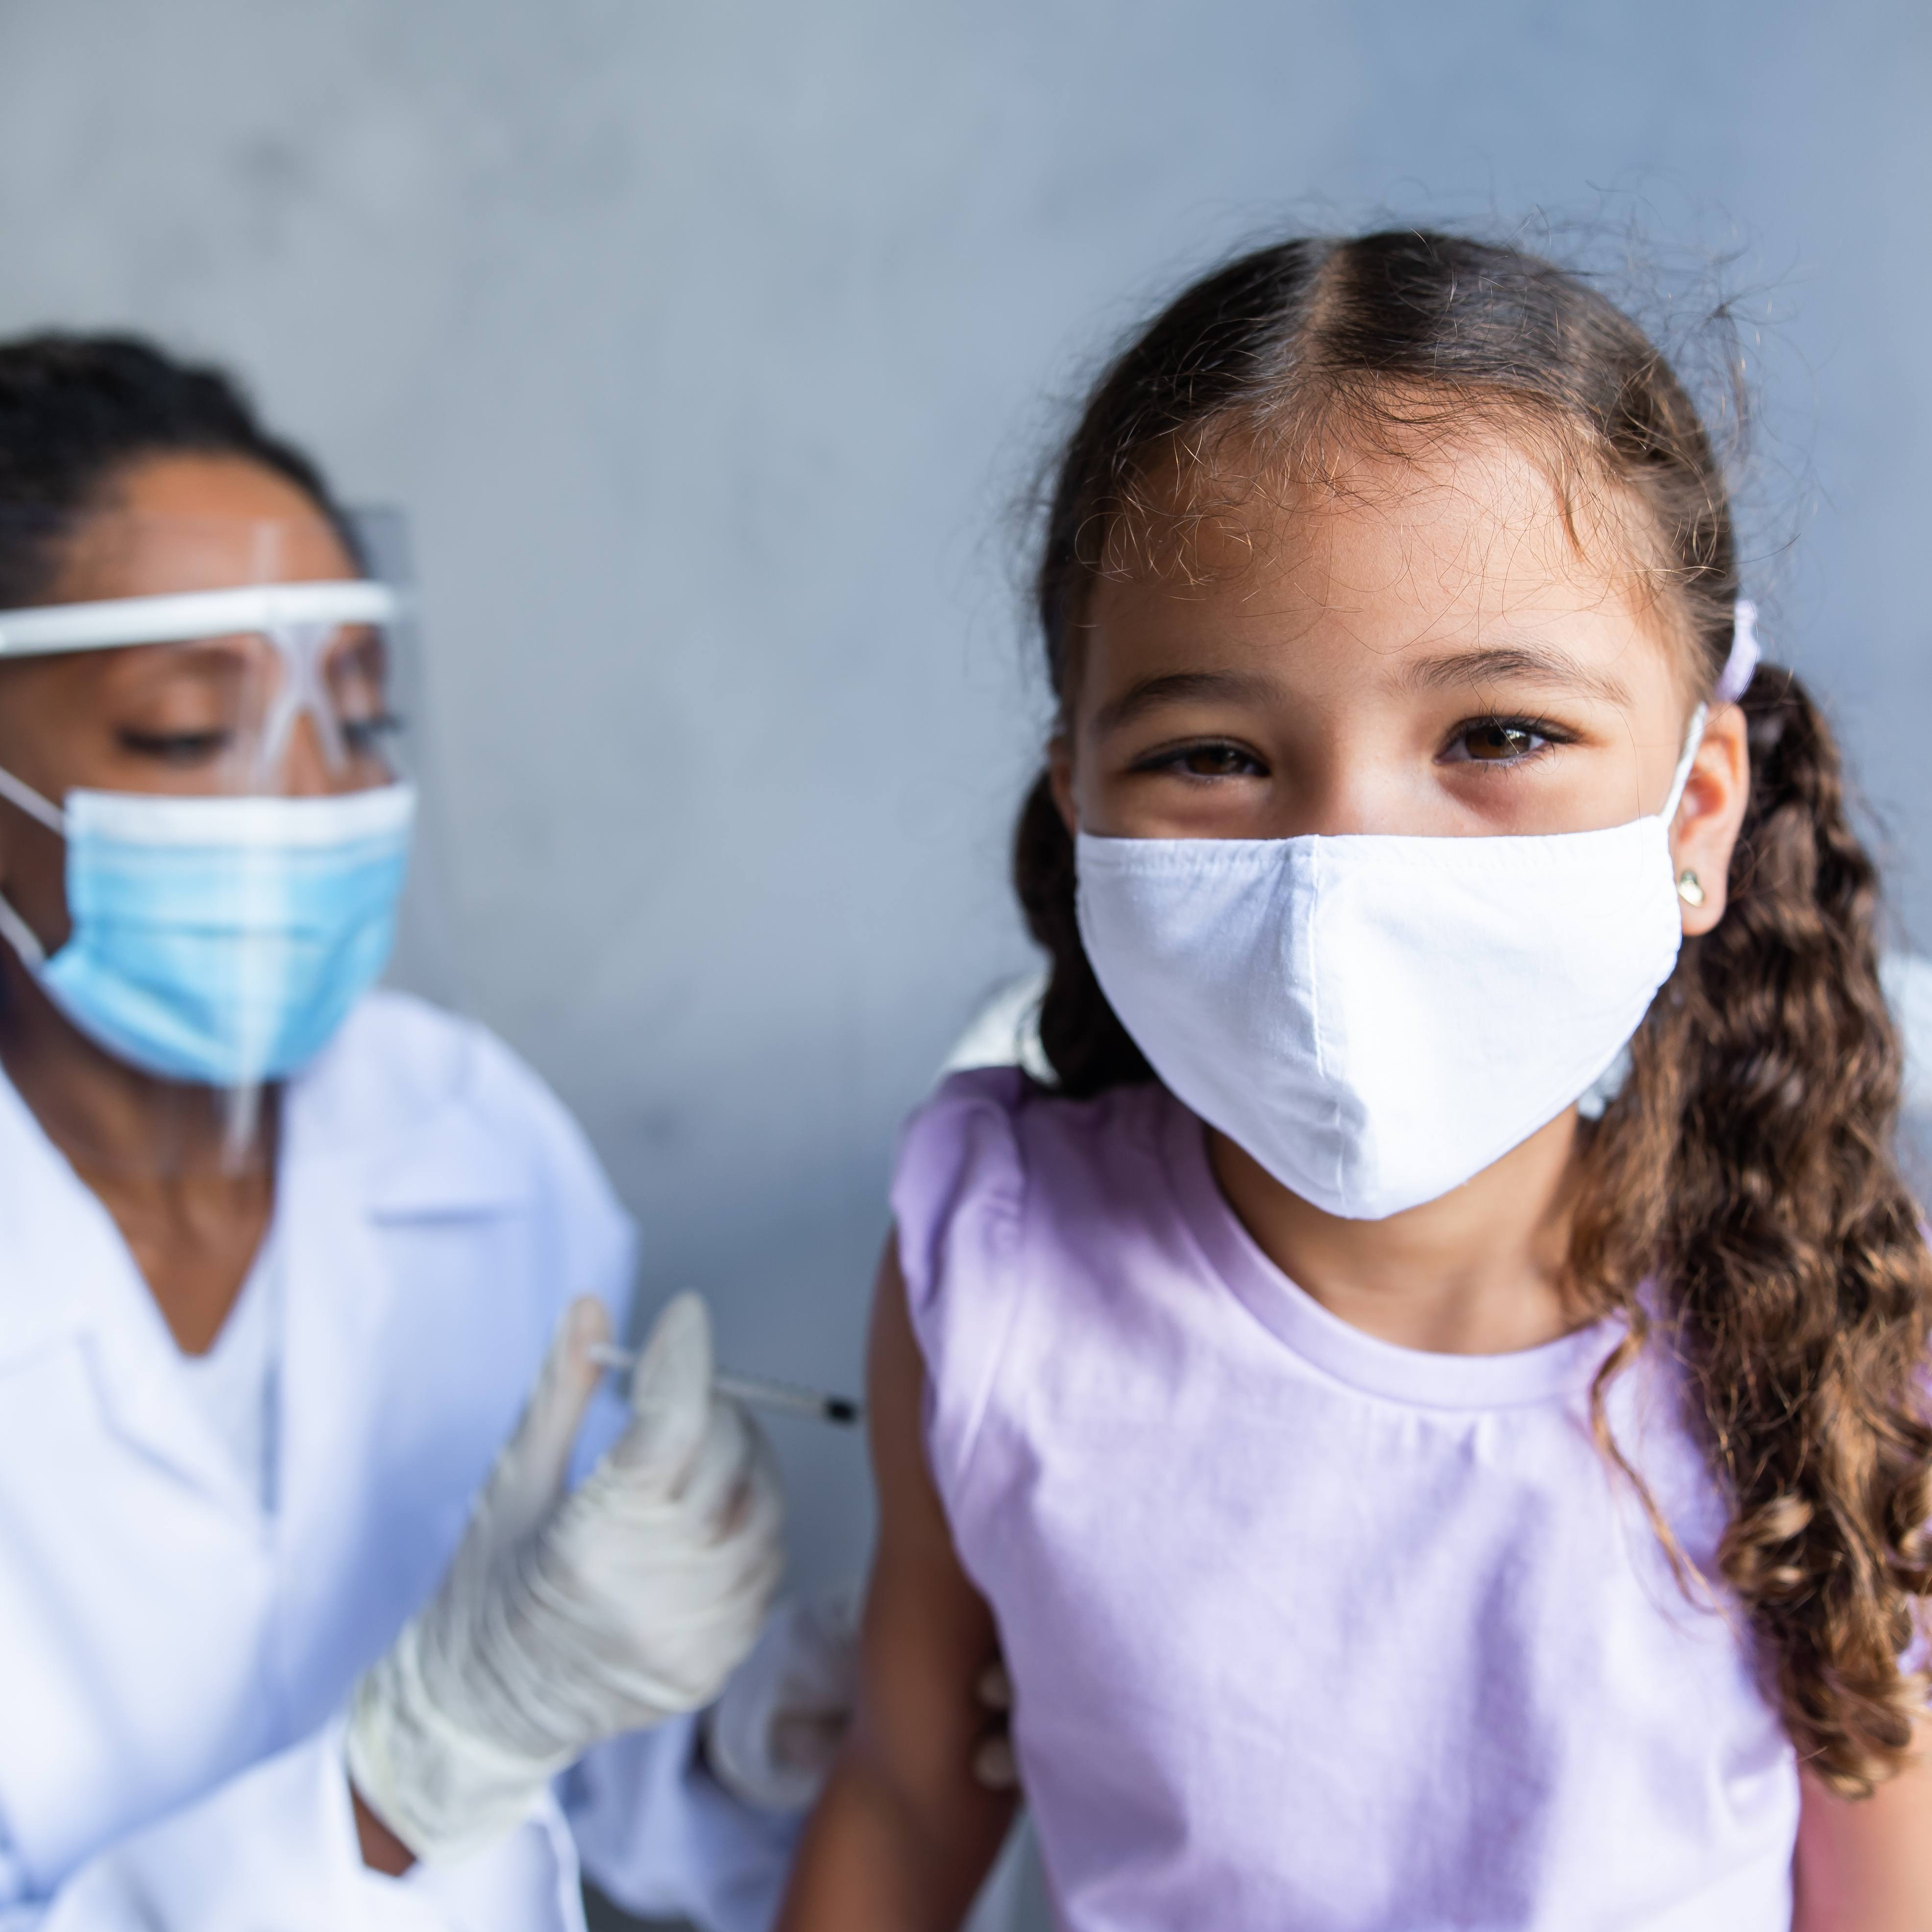 an elementary school aged Latina or Black girl wearing a mask getting a vaccination